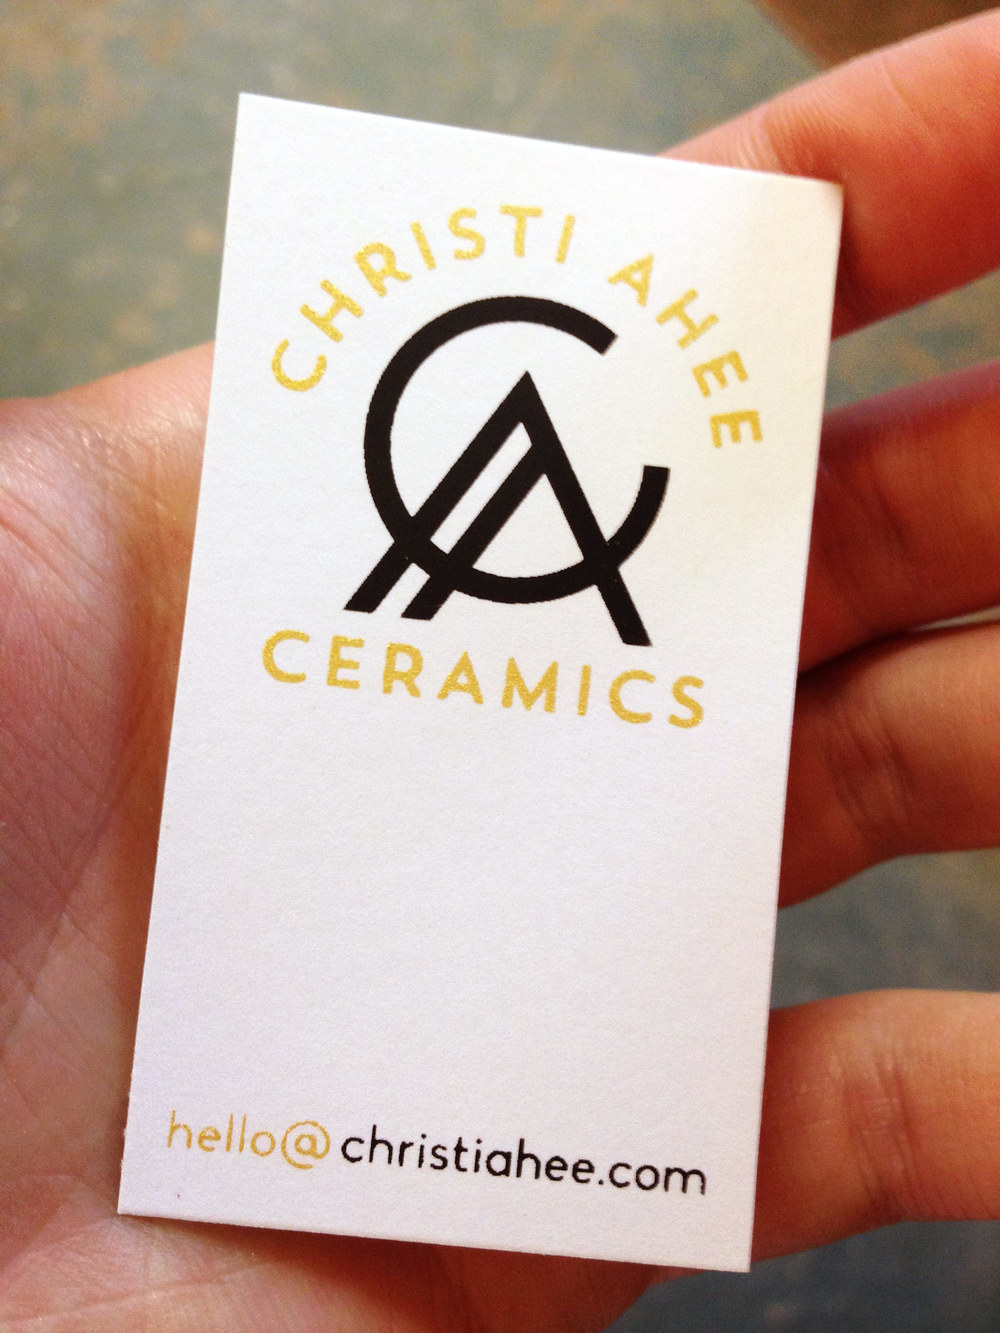 christiahee_businesscard.jpg